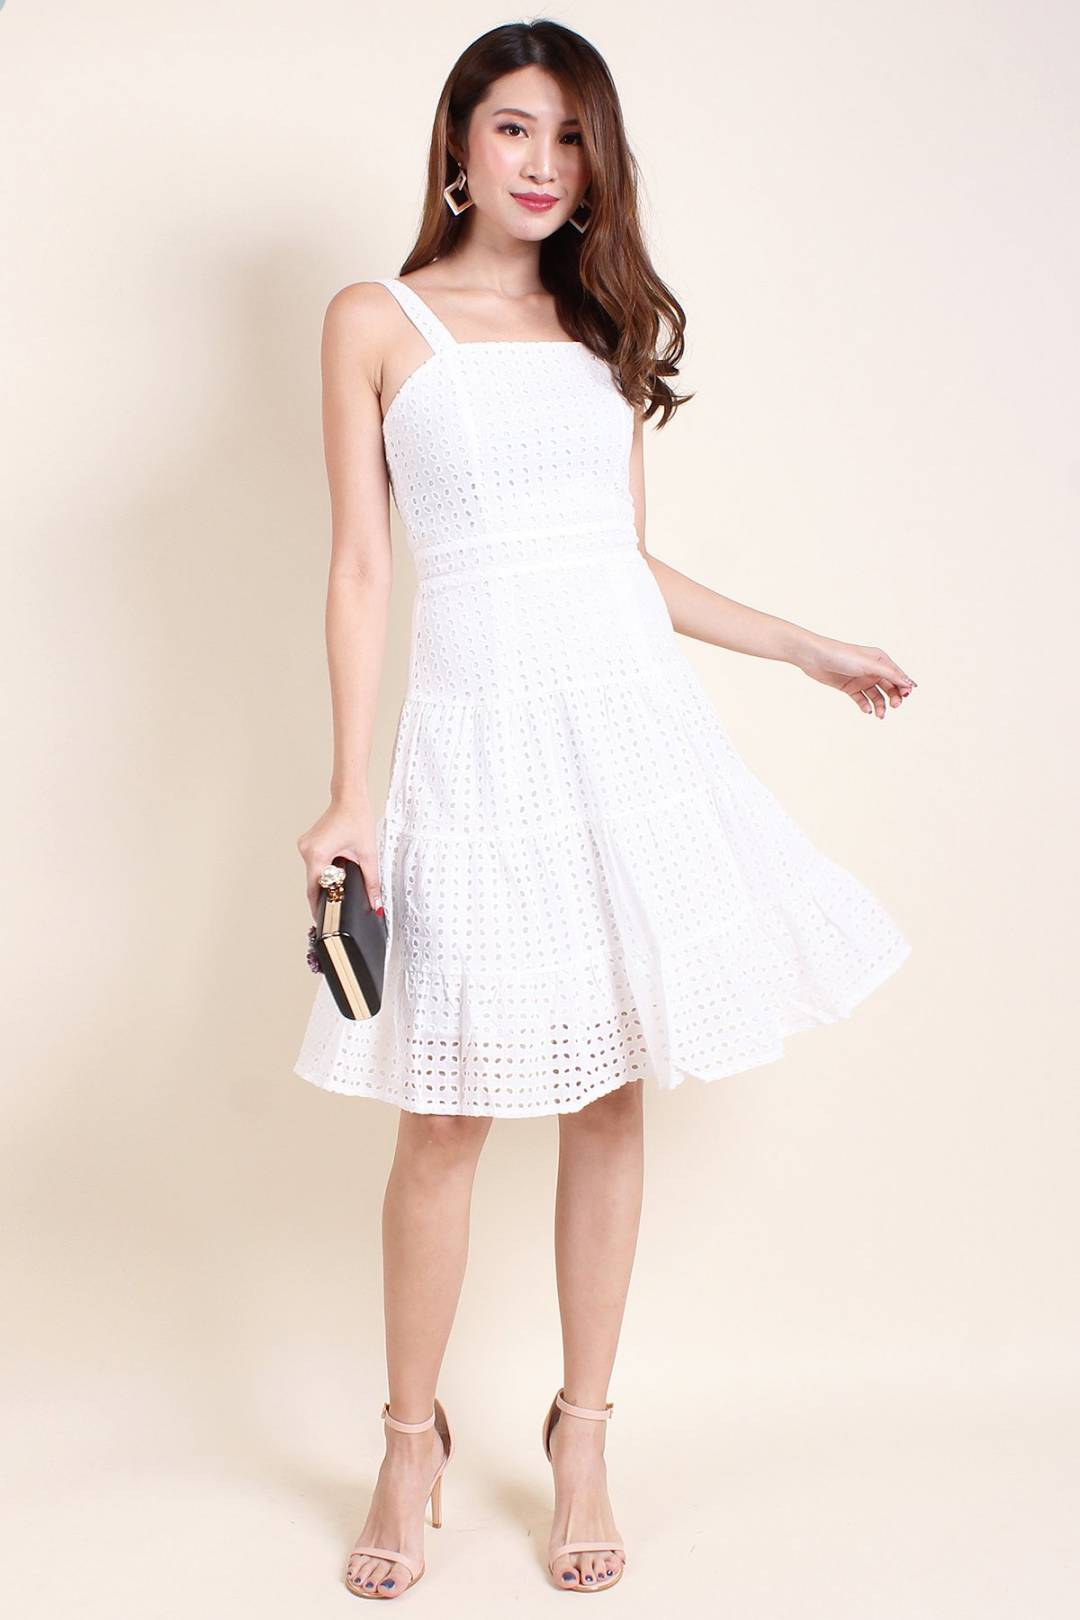 MADEBYNM HOPE EYELET A-LINE DRESS IN WHITE [XS/S/M/L]